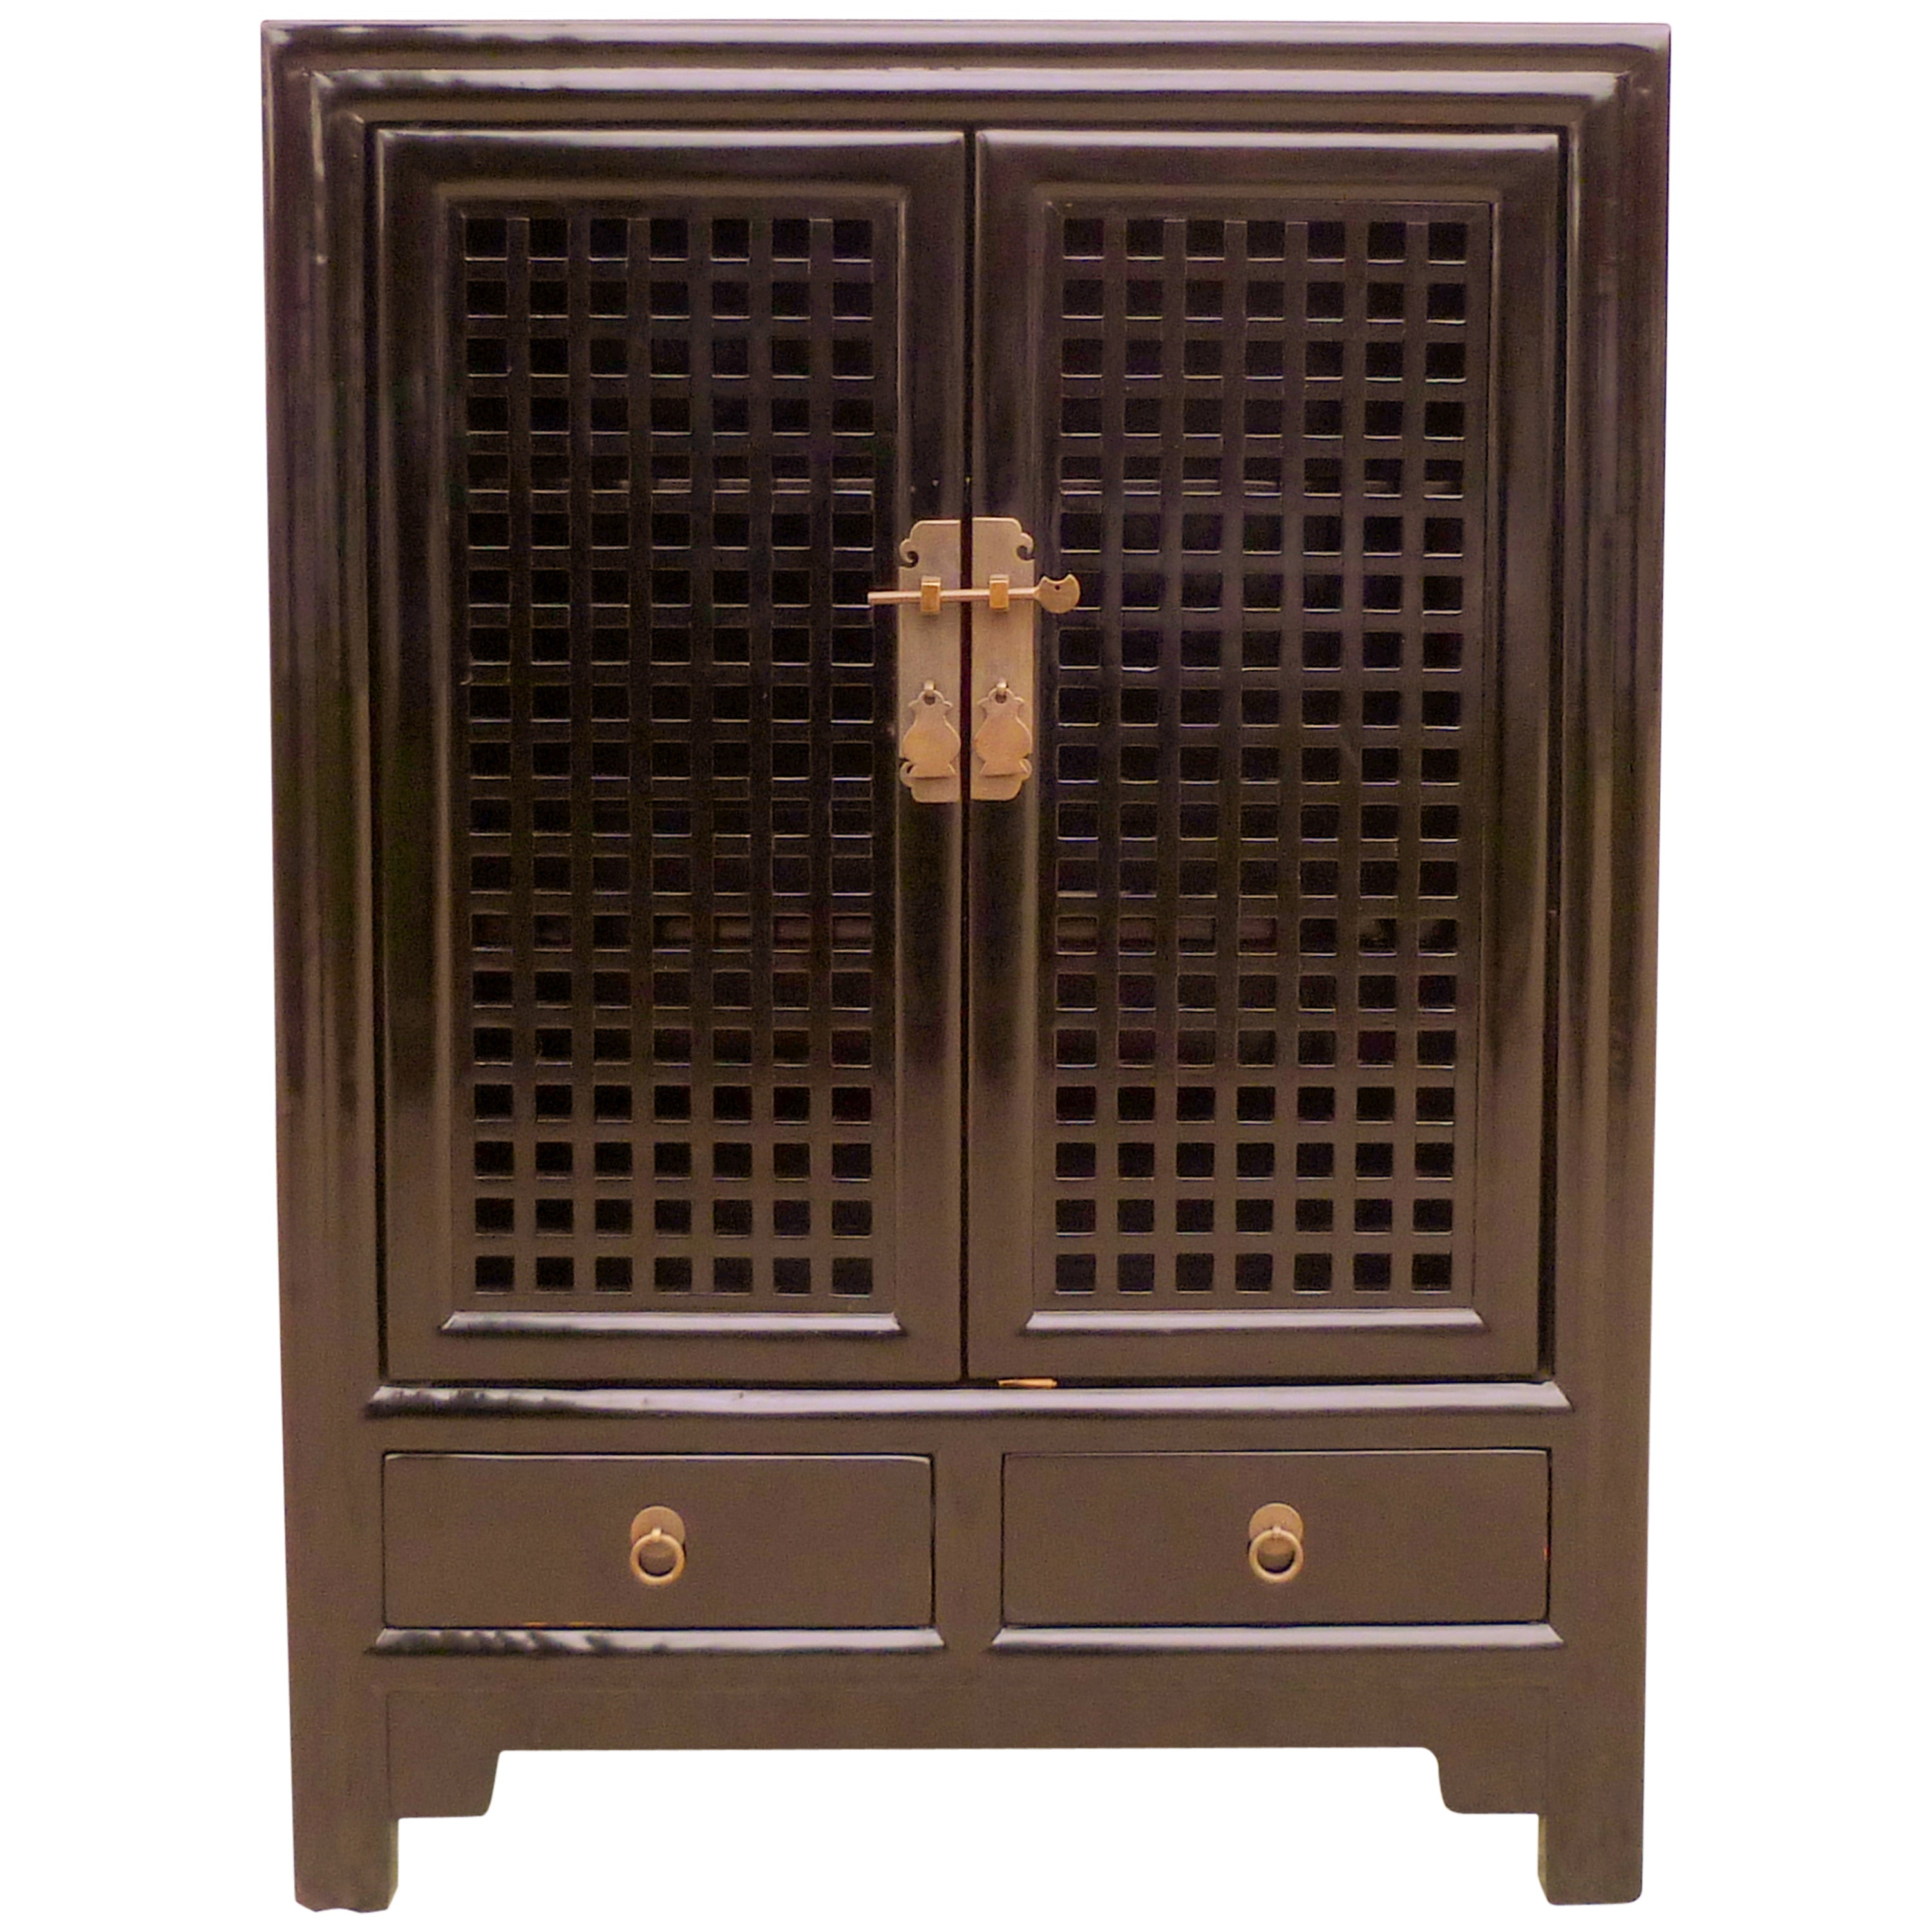 Excellent Fine Black Lacquer Chest With Lattice Fret Work Doors Gmtry Best Dining Table And Chair Ideas Images Gmtryco